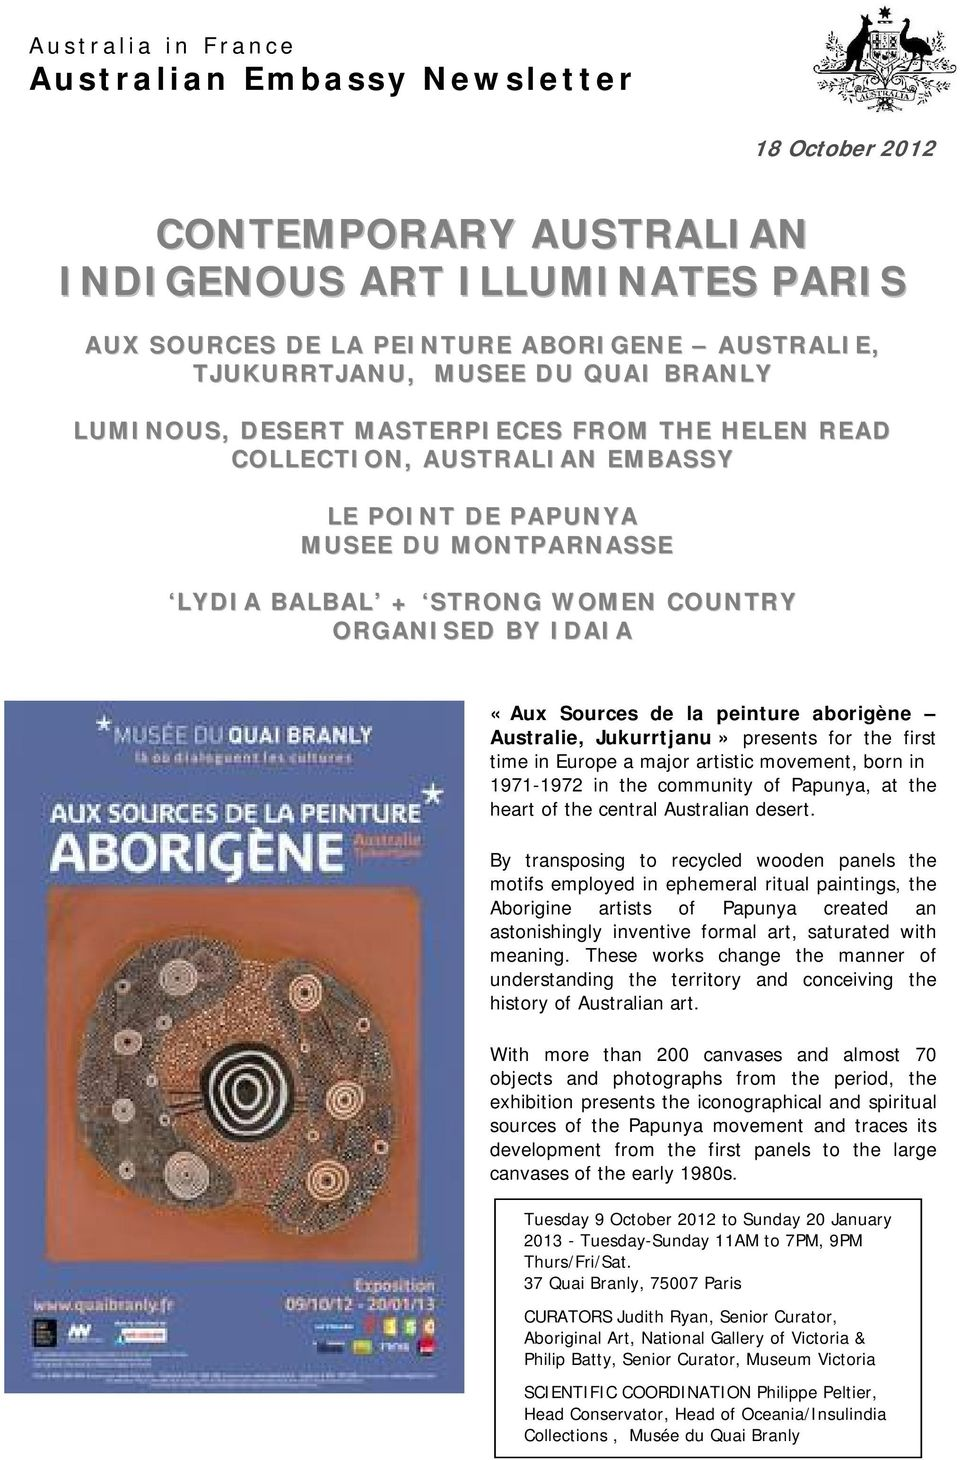 de la peinture aborigène Australie, Jukurrtjanu» presents for the first time in Europe a major artistic movement, born in 1971-1972 in the community of Papunya, at the heart of the central Australian